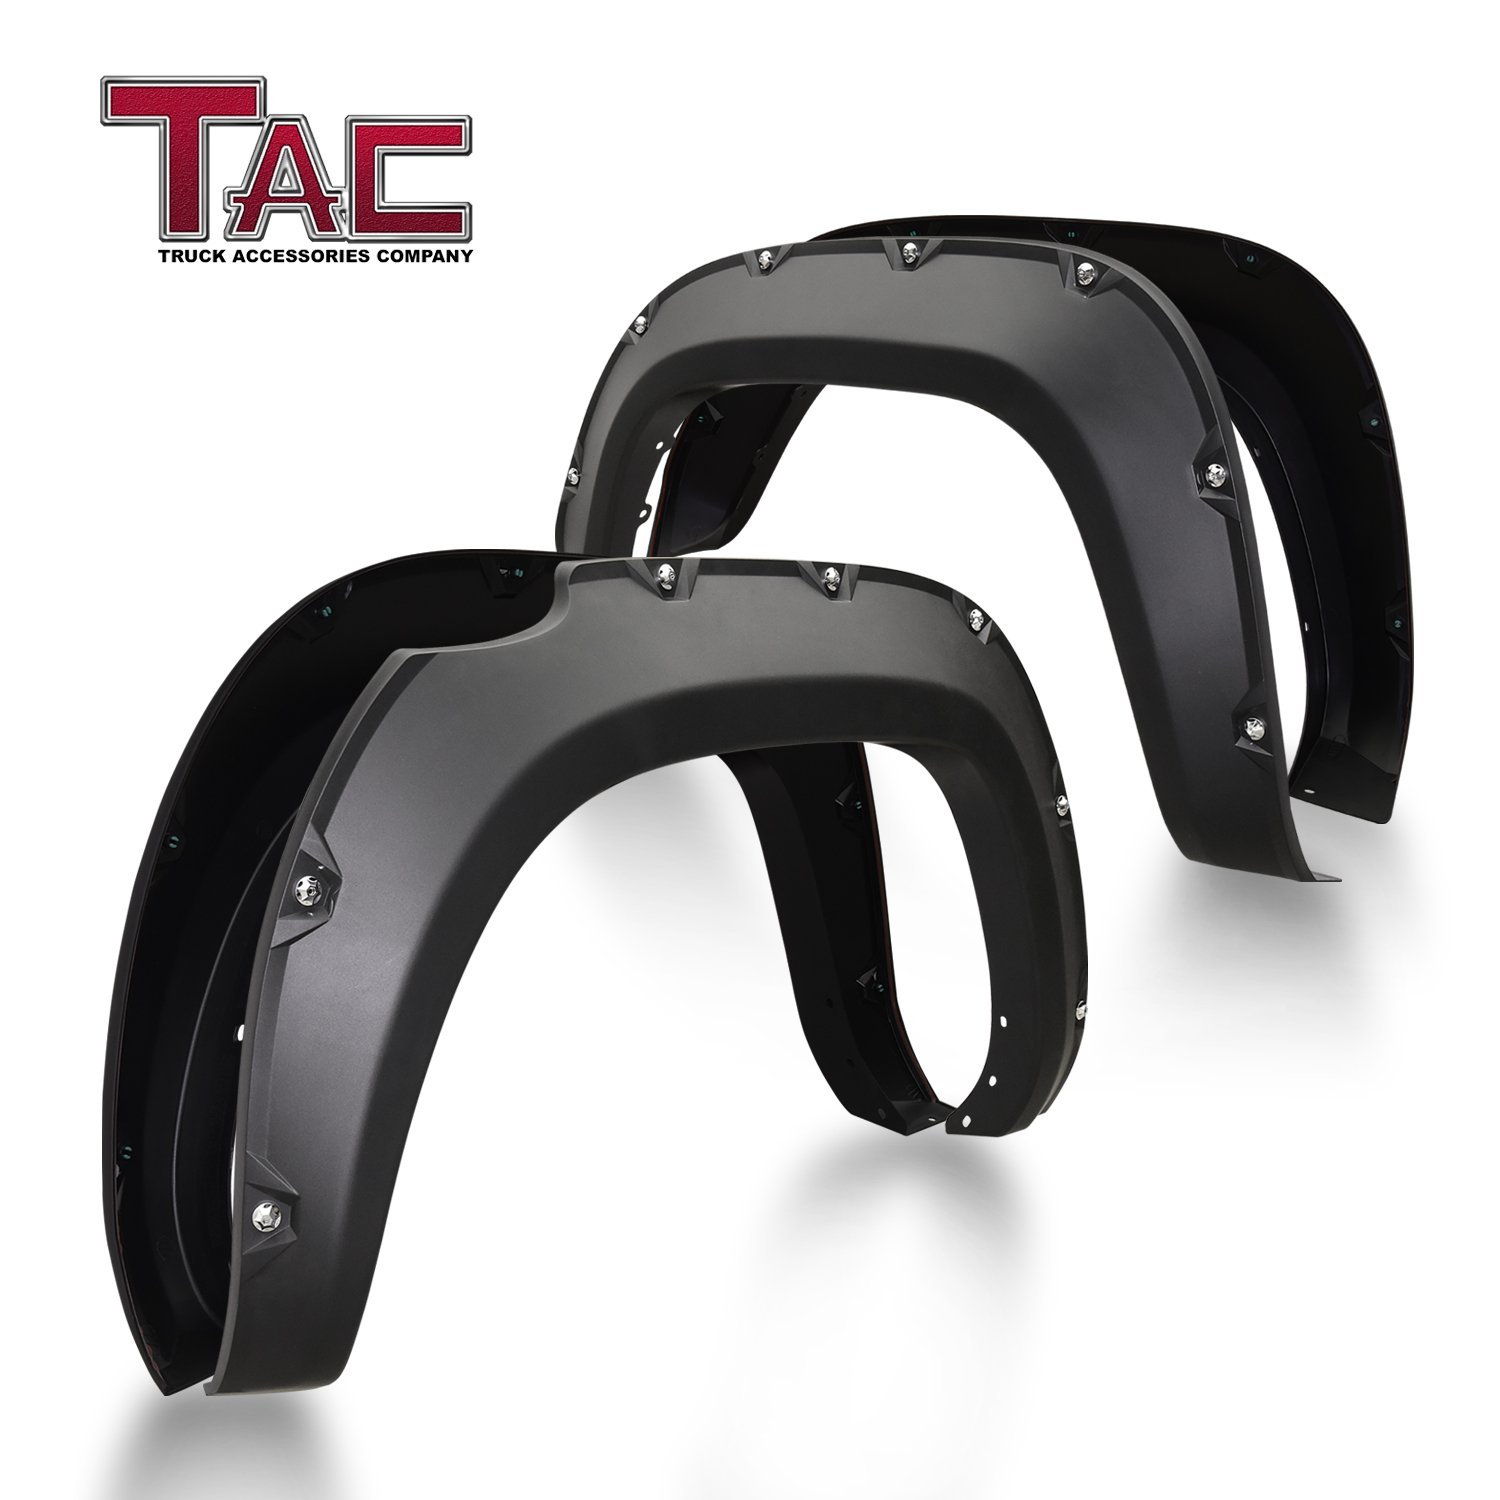 TAC Fender Flares Cover Fit 2016-2019 Toyota Tacoma Truck Off-road 4pcs Matte Black Smooth Front & Rear Pocket Rivet Style Pickup All Beds